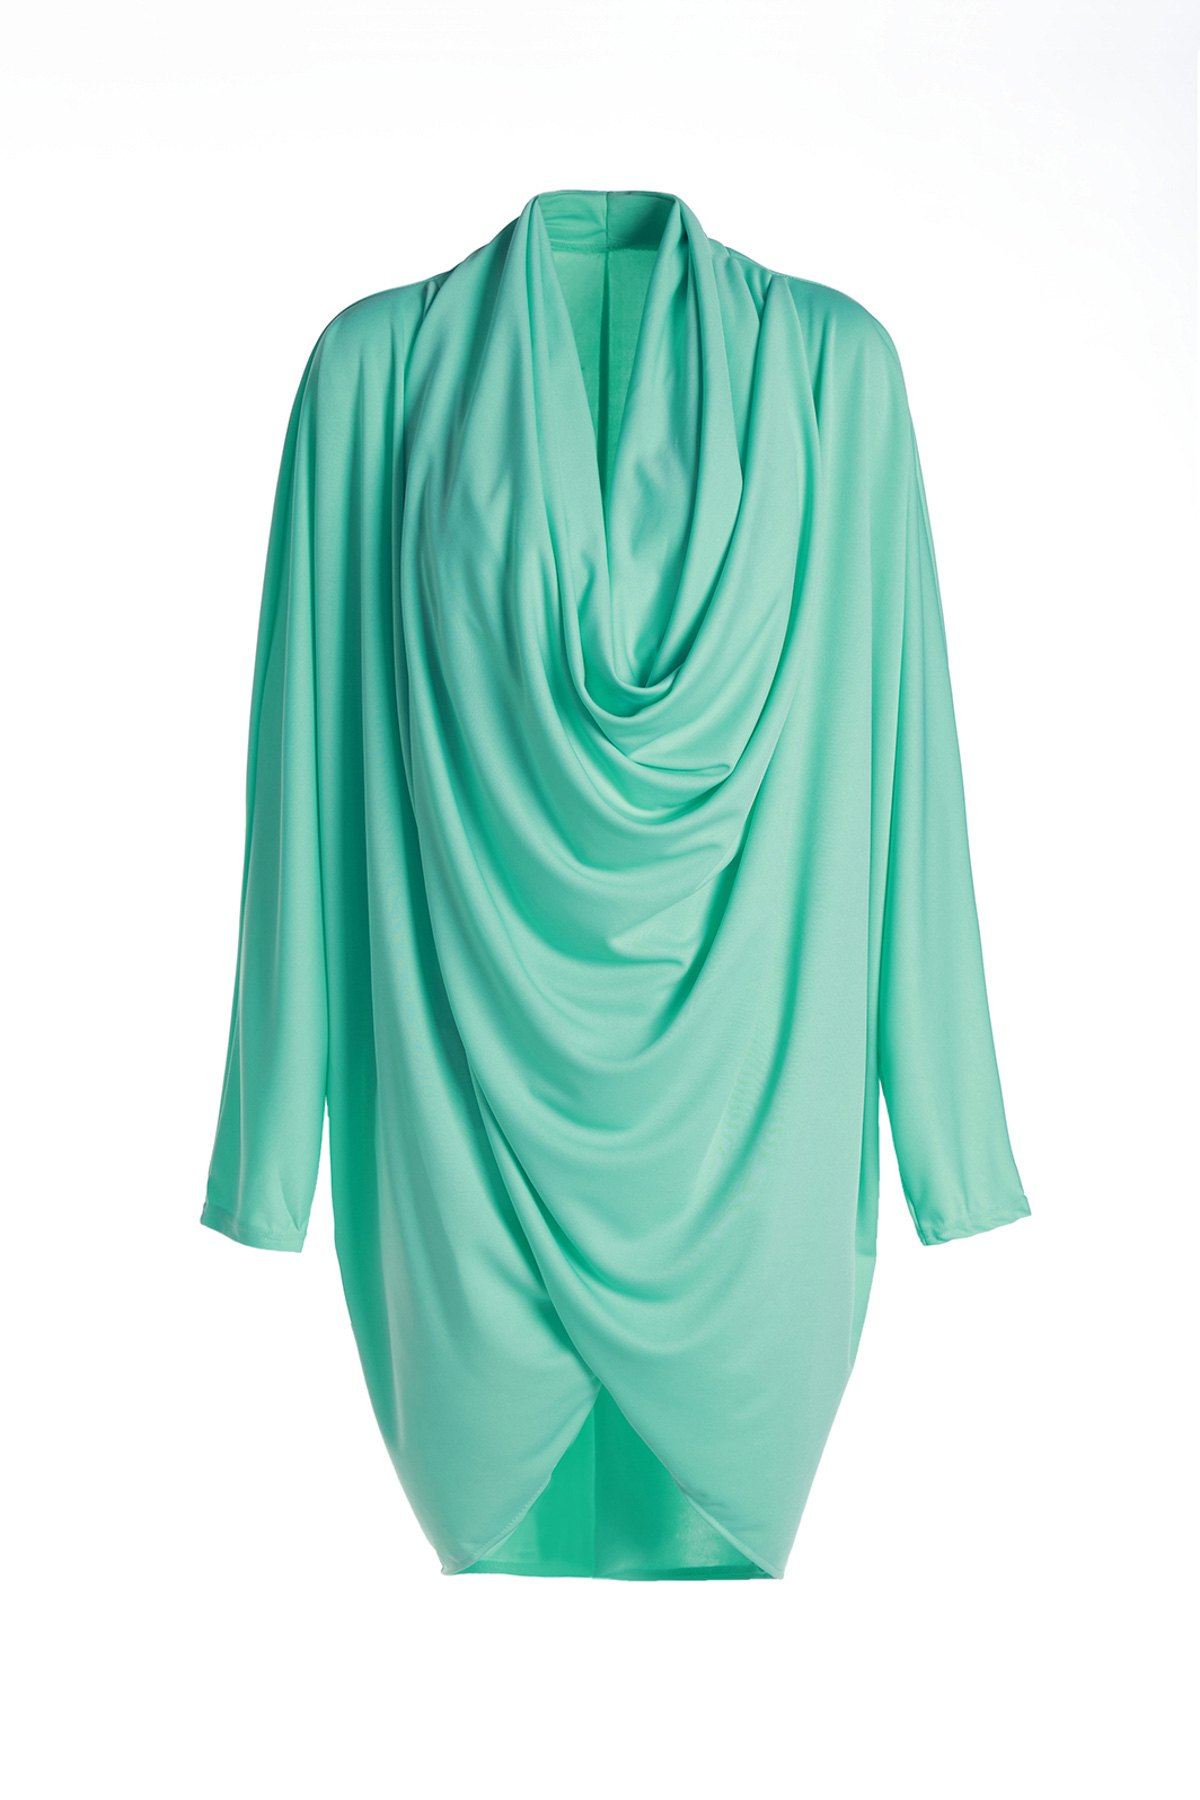 Cowl Neck Long Sleeve Pure Color Coat For Women alfani women s long sleeve marilyn cowl neck tunic sweater emerald 2x